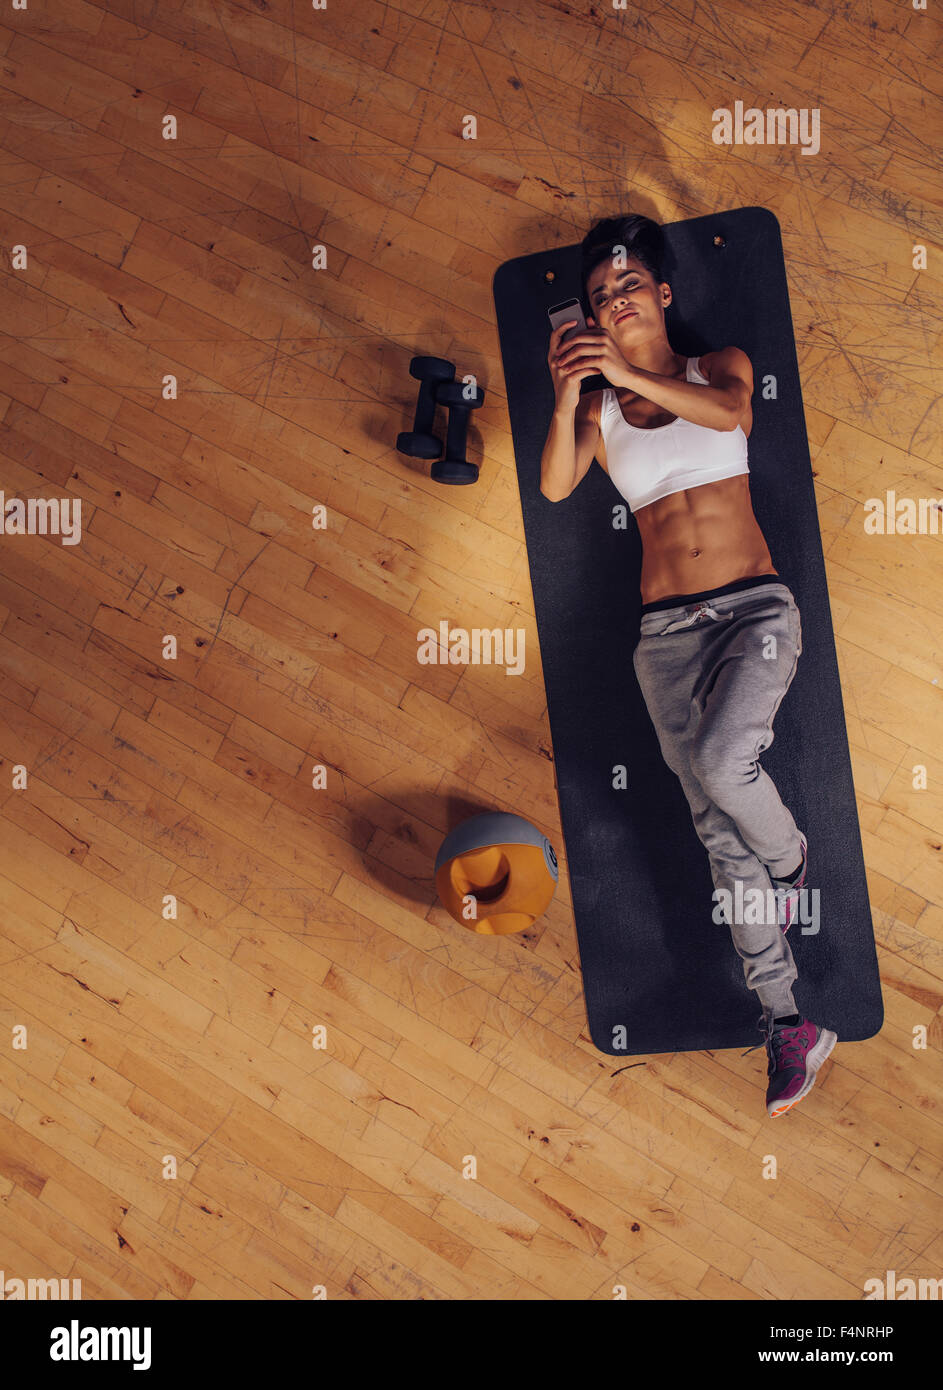 Overhead view of fitness woman lying on mat using mobile phone. Top view of young female taking break from exercise. - Stock Image